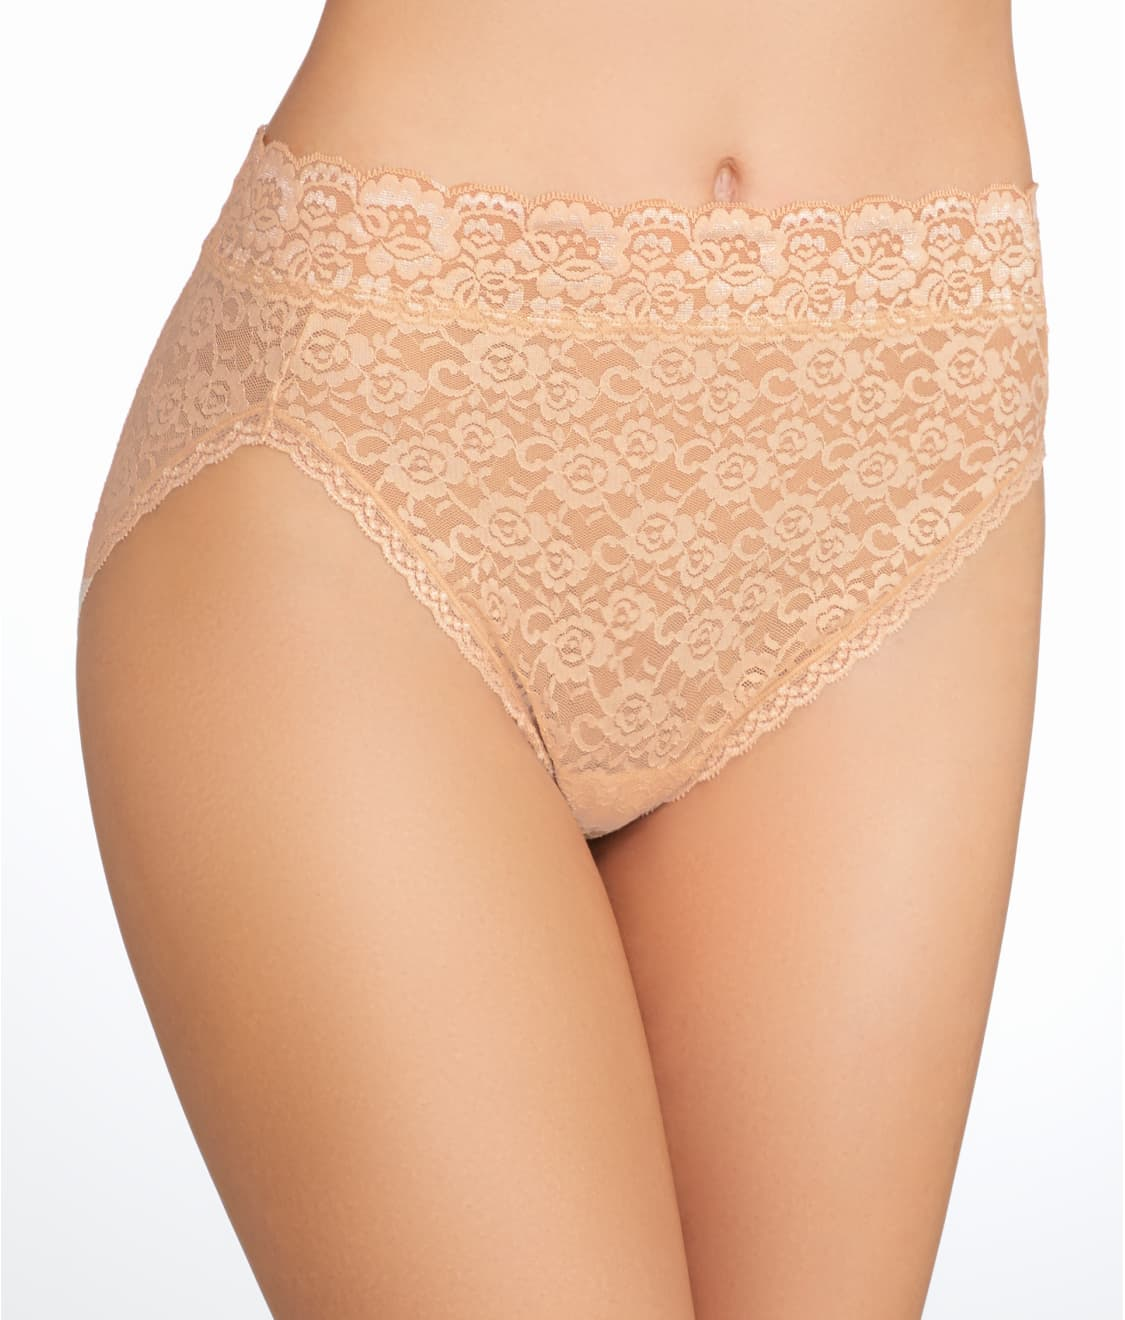 7254b0fcc27 See Flattering Lace Hi-Cut Brief in Lace Beige